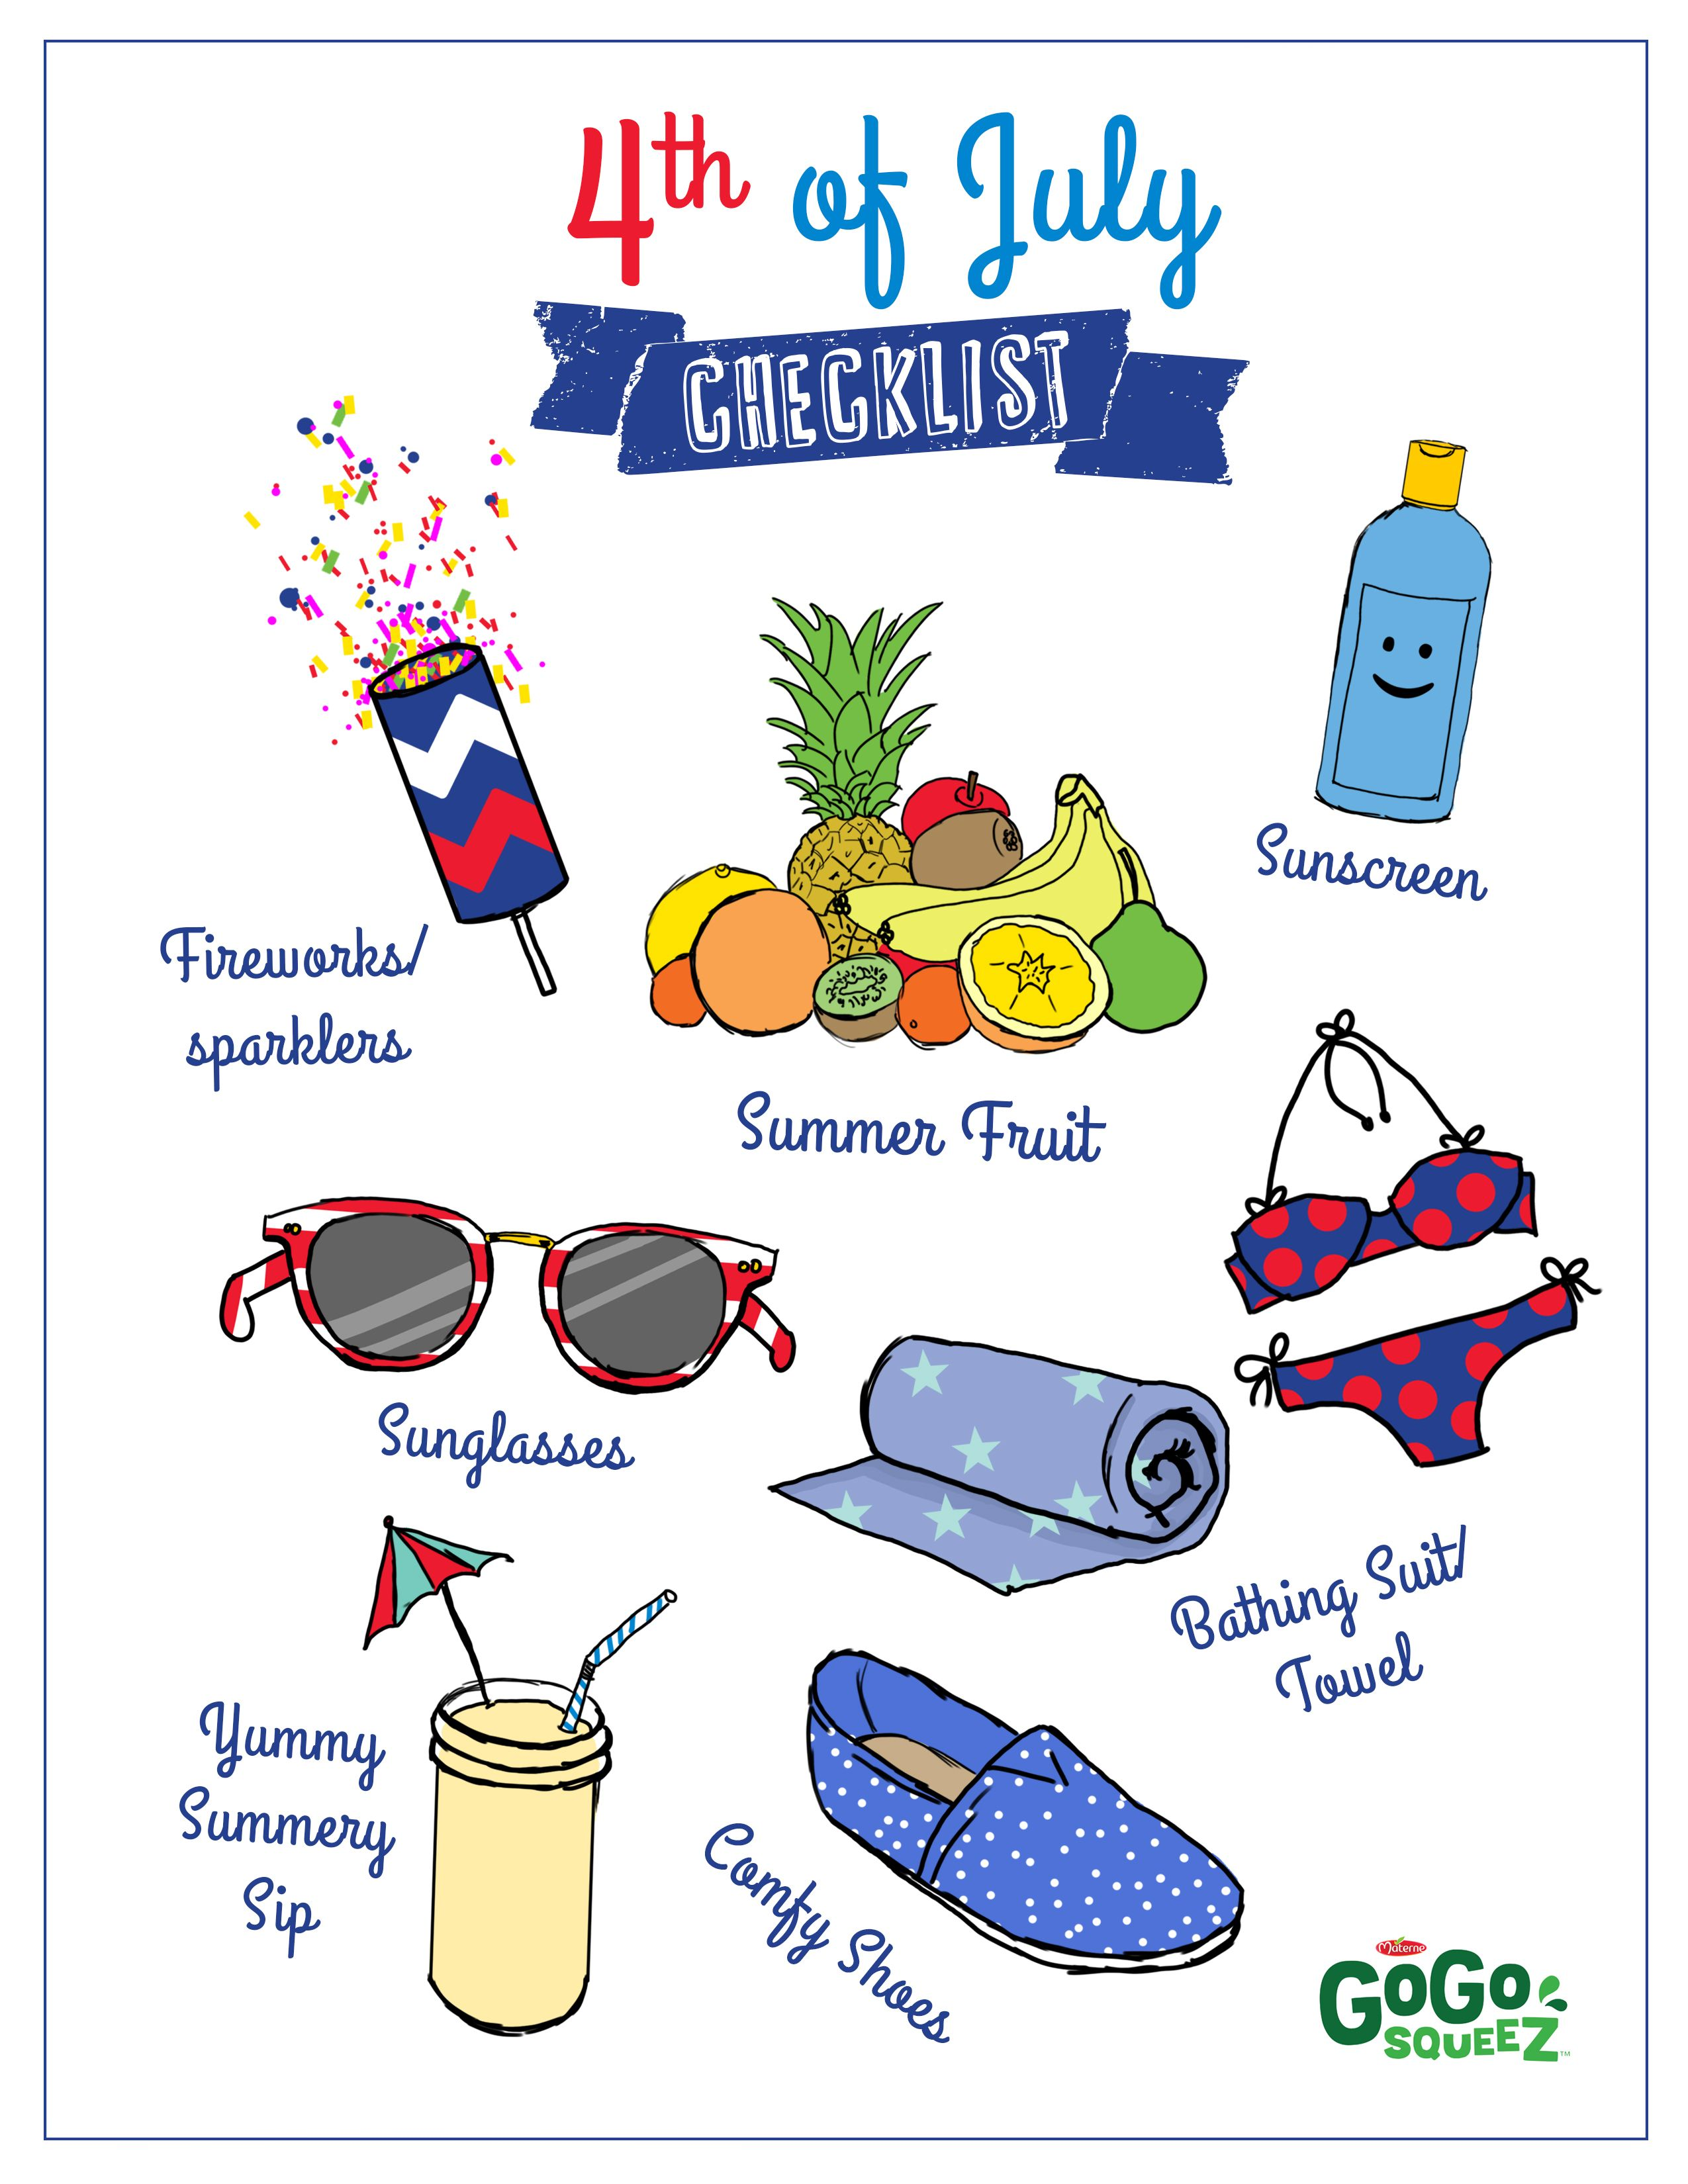 Live Playfully 4 Ways To Celebrate The 4th Of July 4th Of July How To Make Fireworks July